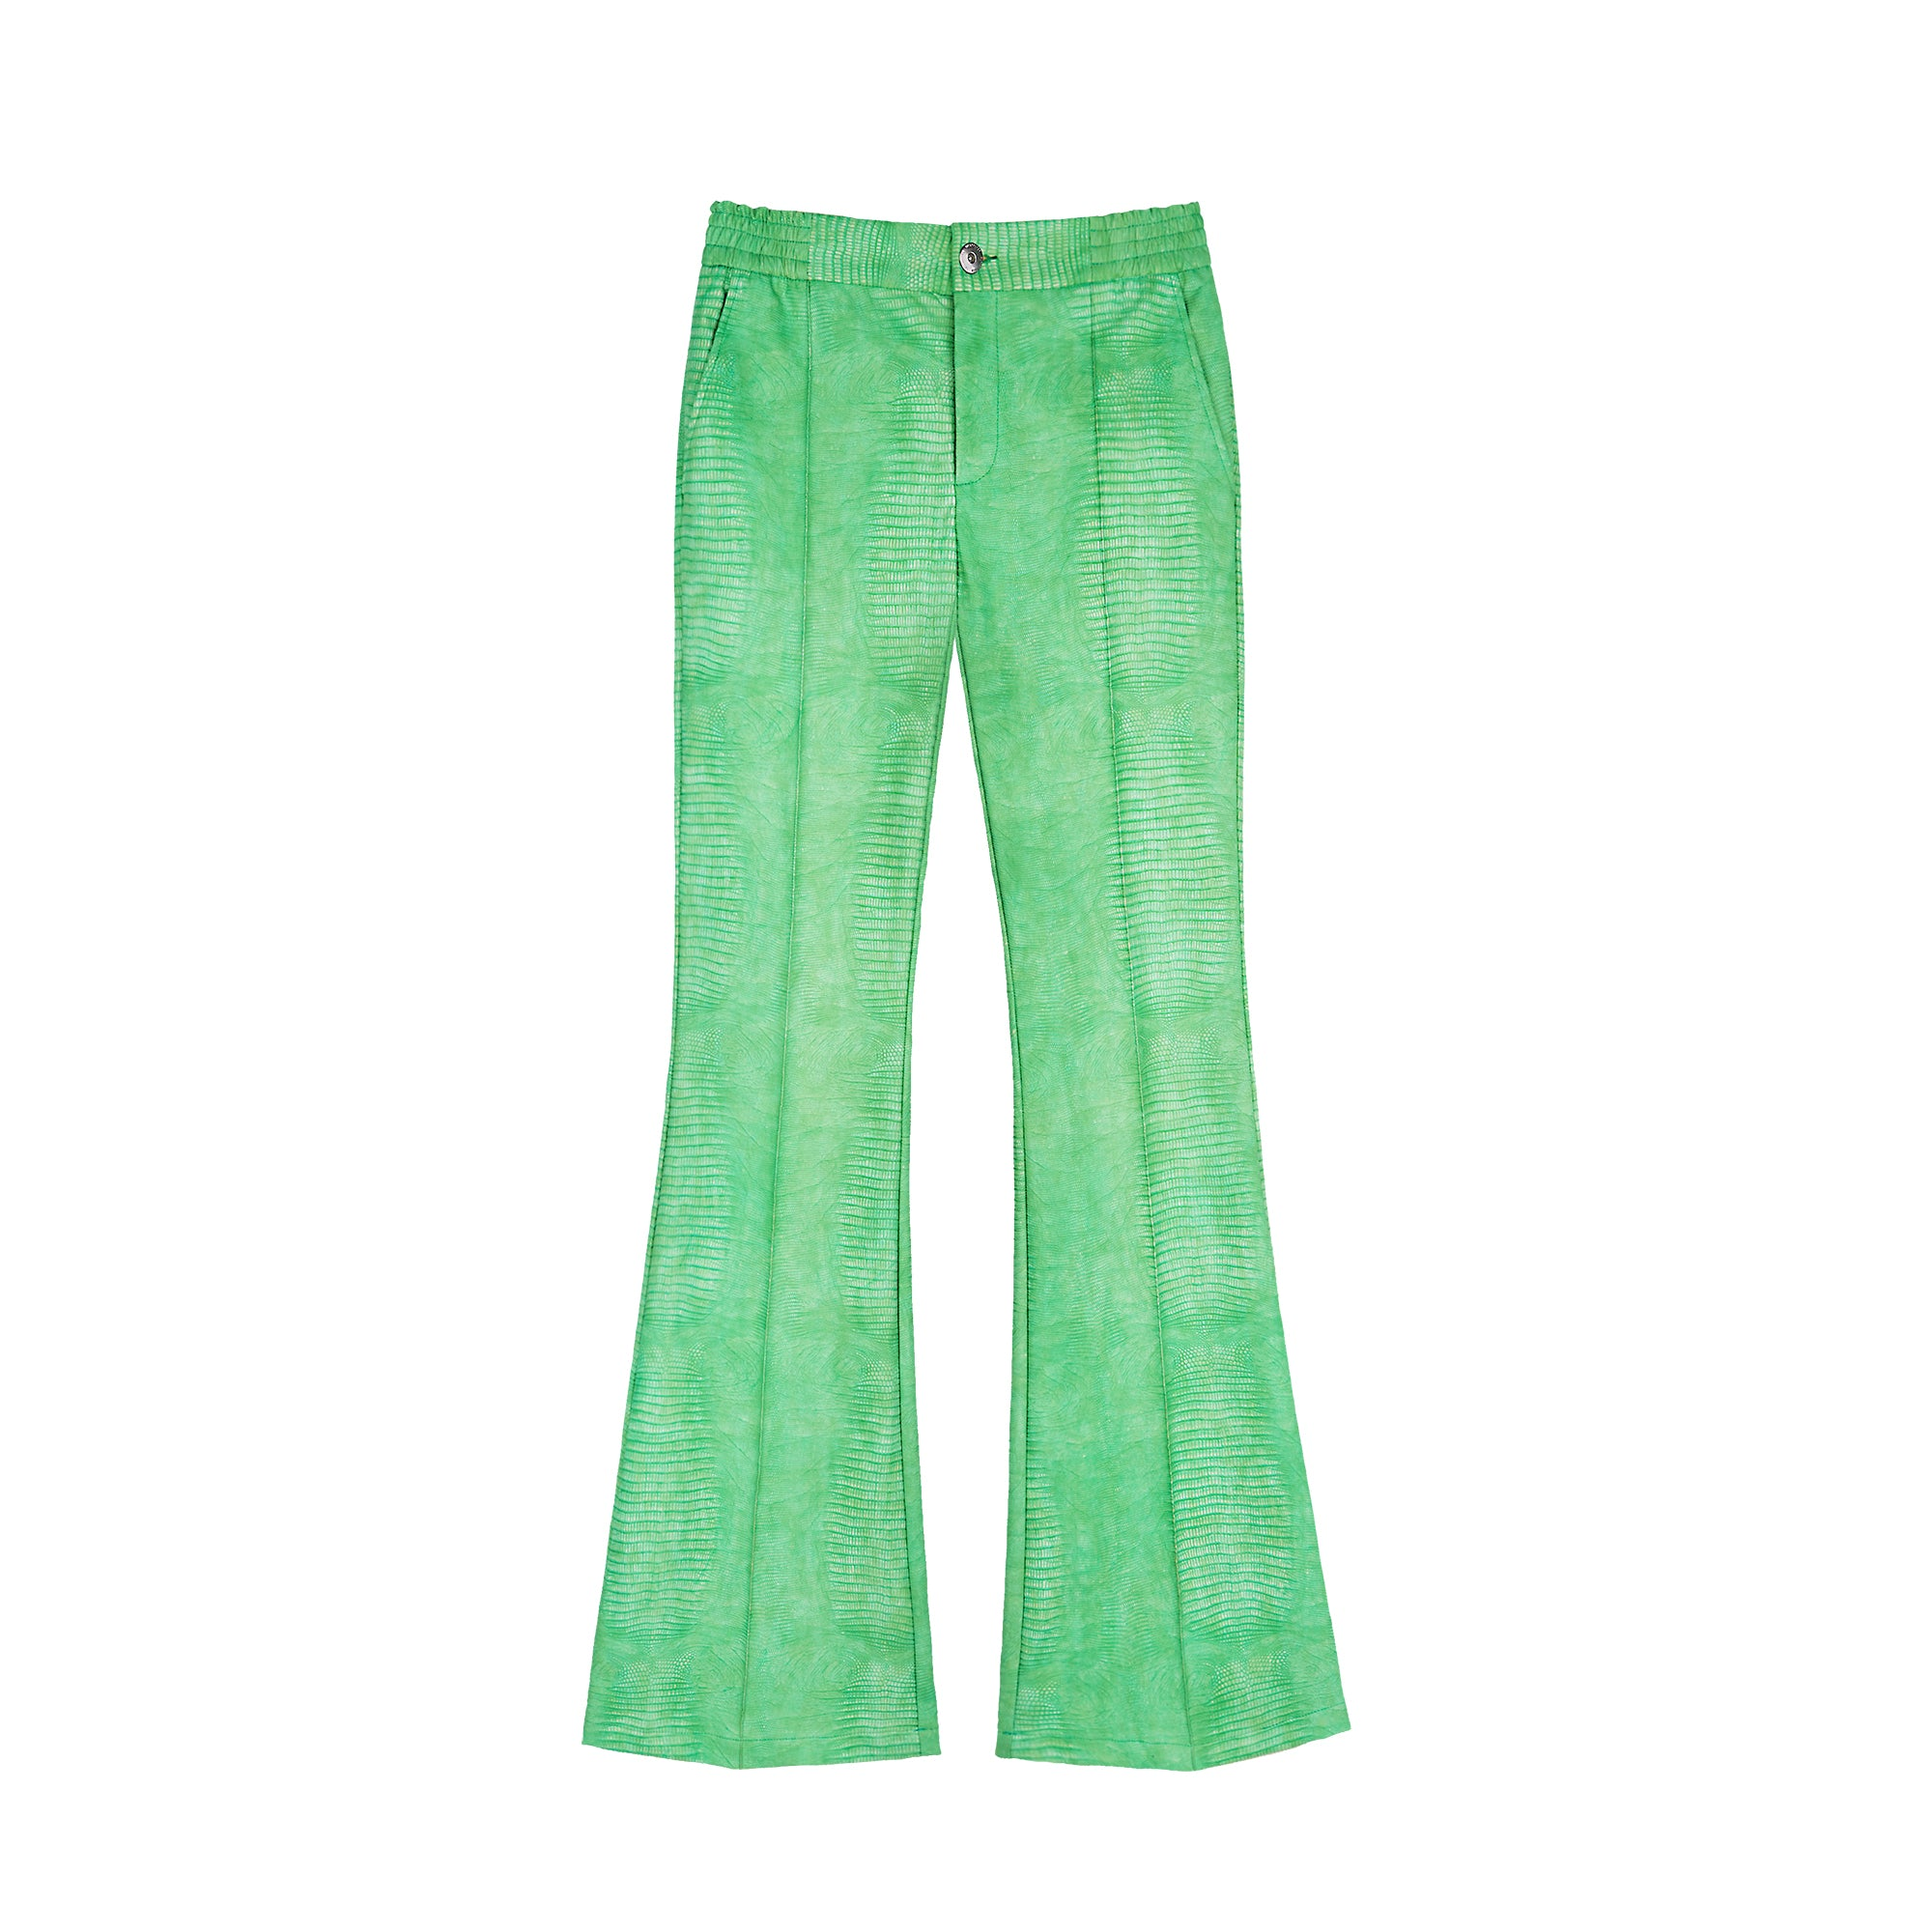 NUTEMPEROR Z Project 0002 green lizard skin slim flared pants 4026525469127 4026525469128